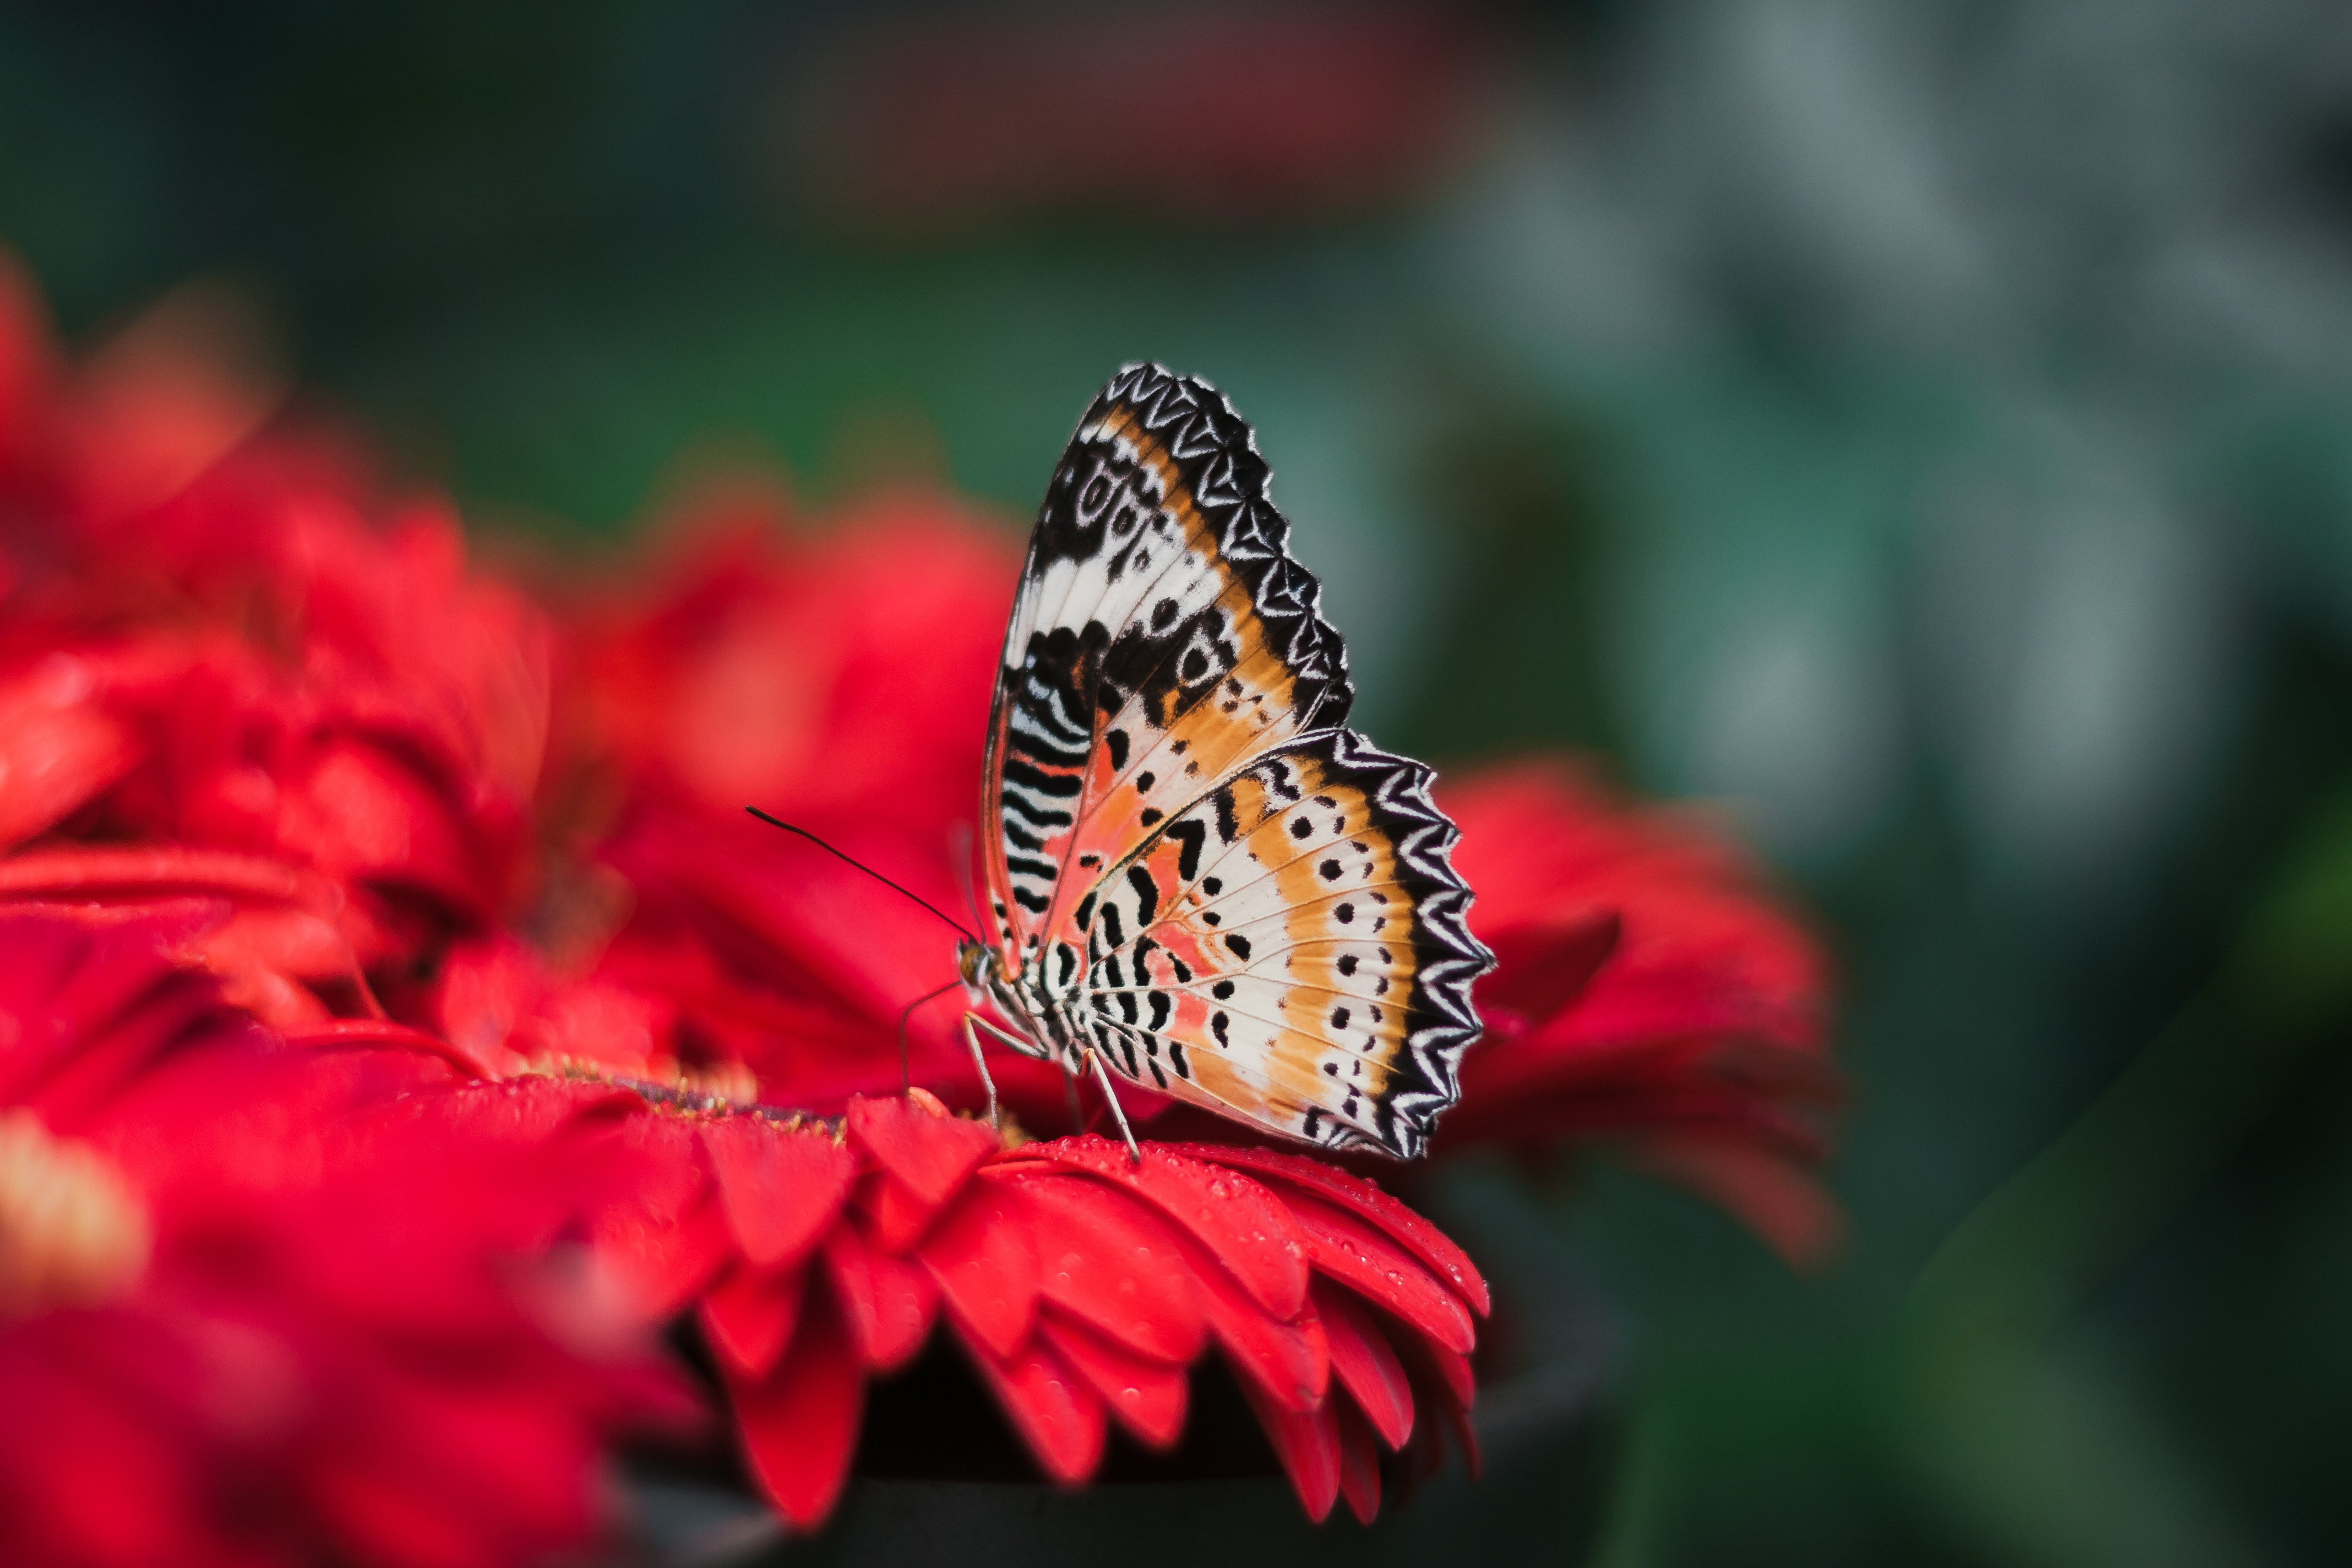 108485 Screensavers and Wallpapers Bright for phone. Download Flower, Macro, Bright, Blur, Smooth, Butterfly, Wings pictures for free